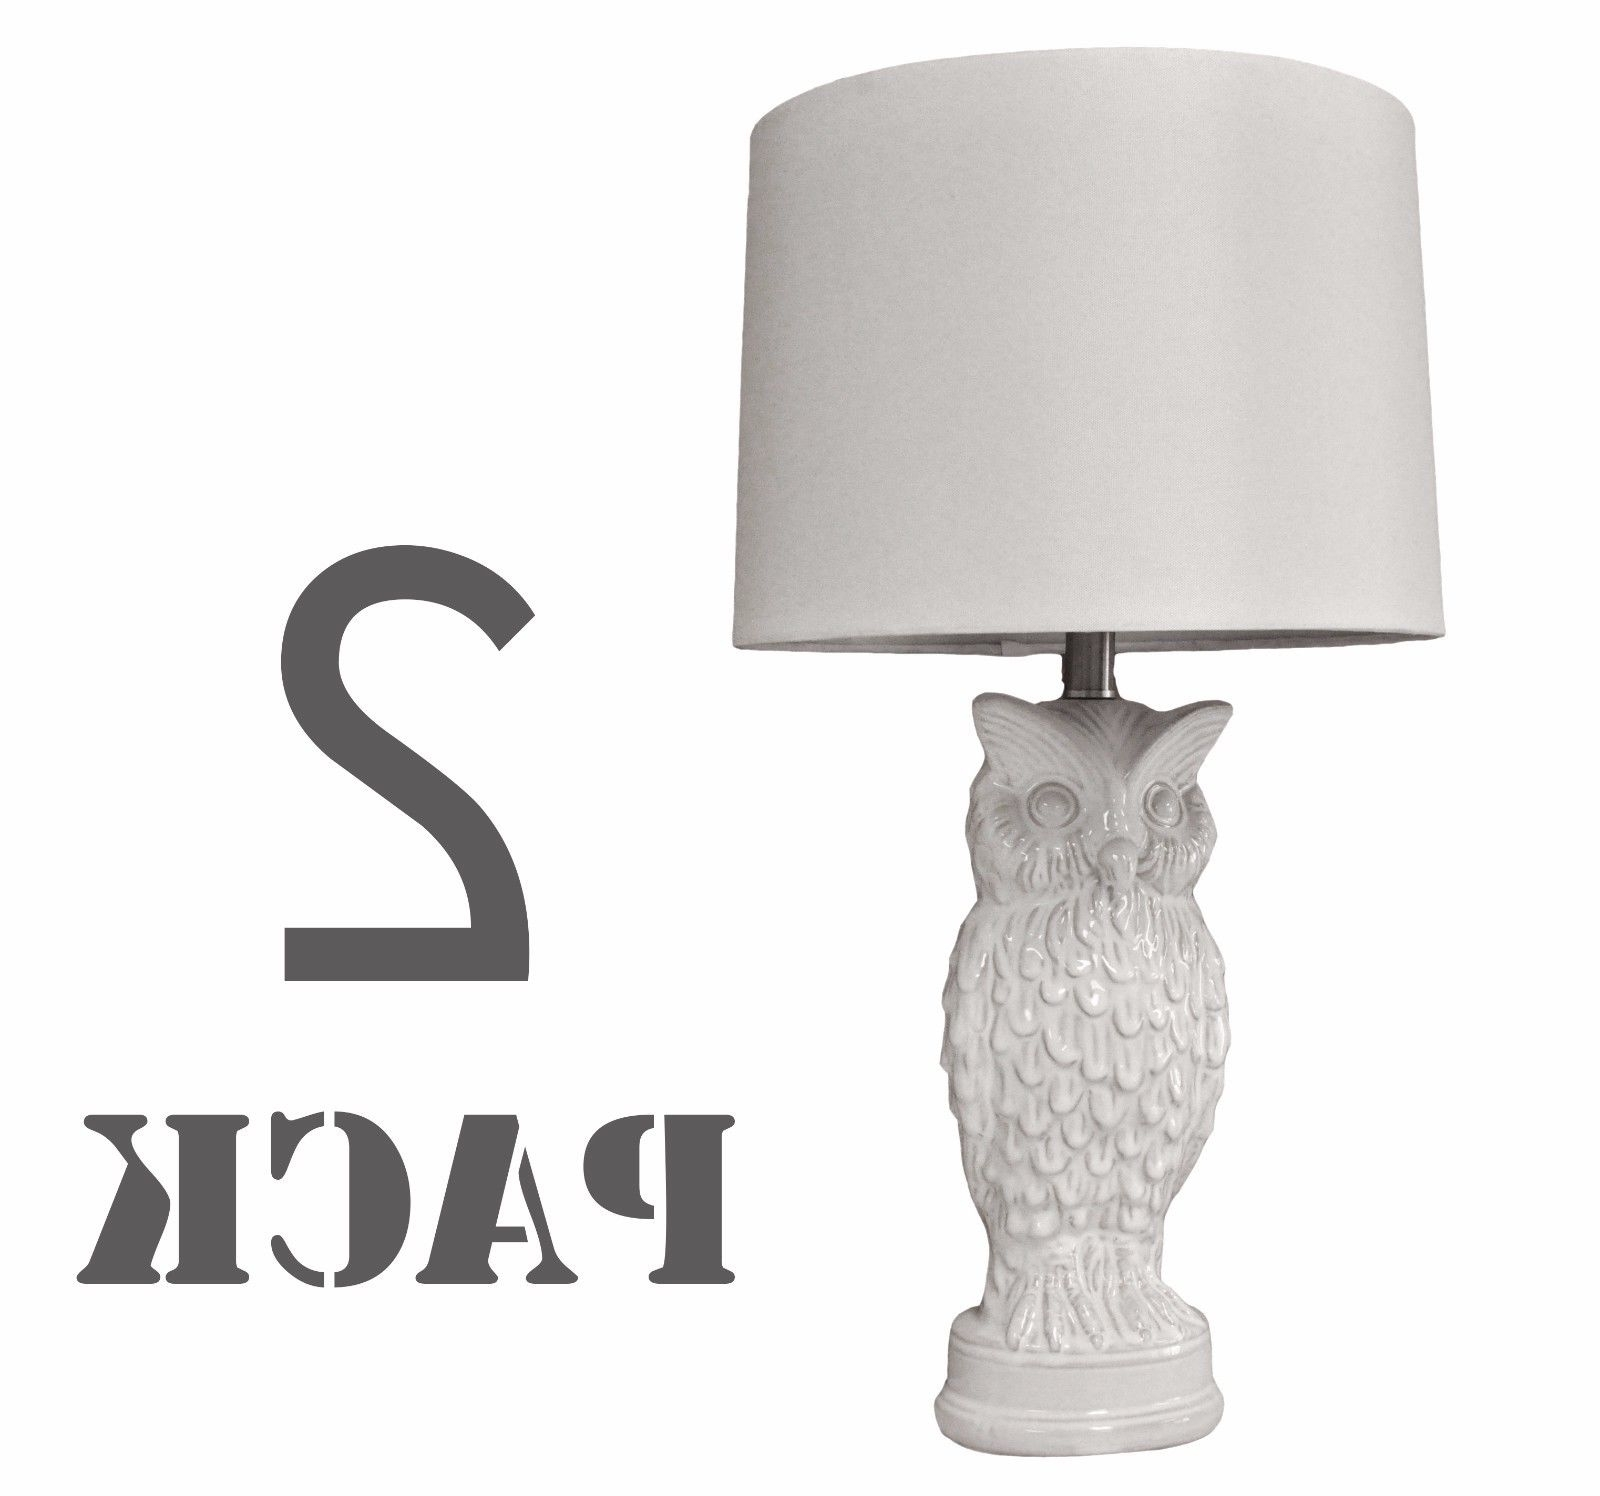 "Set Of 2 Living Room Table Lamps Intended For Well Liked Set Of 2 White Owl Ceramic Table Lamp For Bedroom Living Room – 27""h (View 14 of 20)"